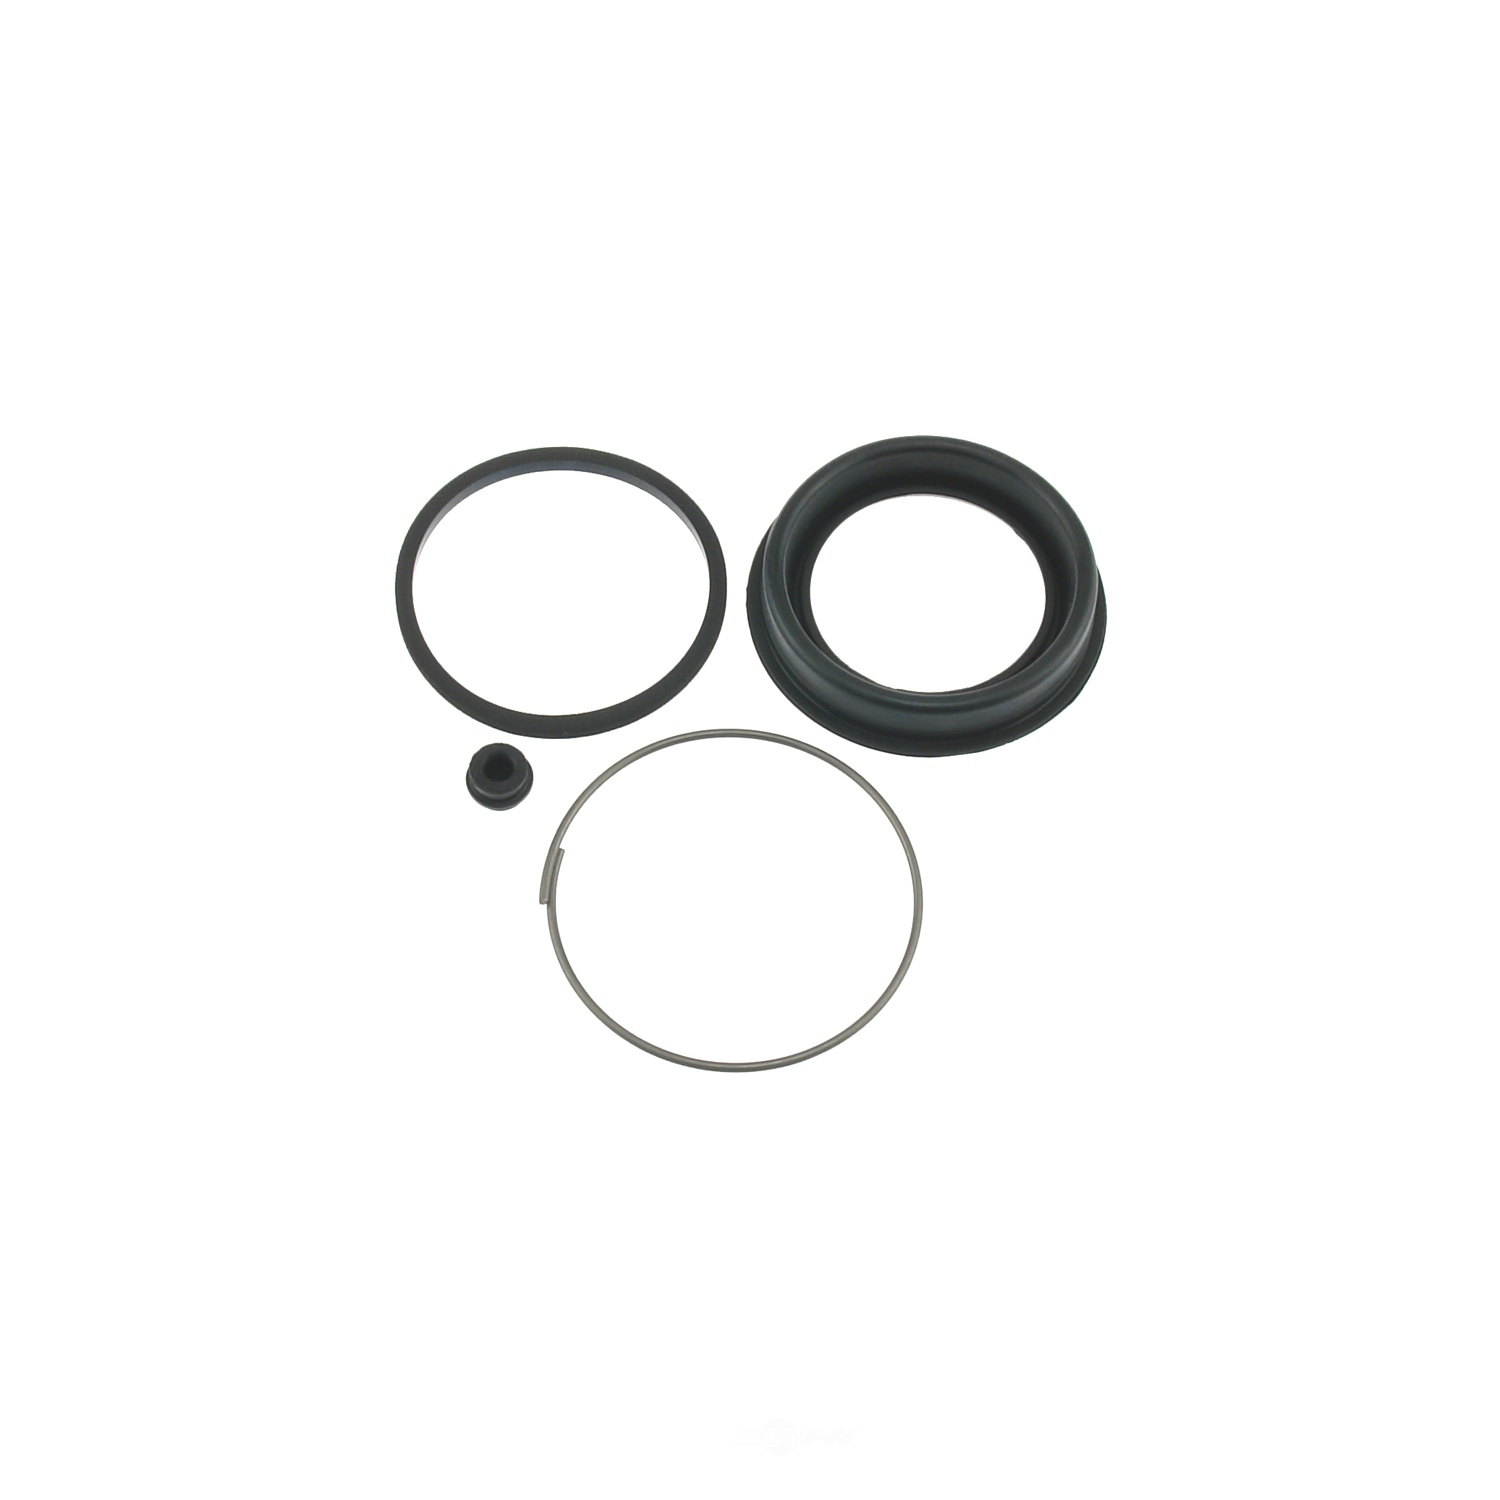 CARLSON QUALITY BRAKE PARTS - Disc Brake Caliper Repair Kit (Front) - CRL 15255